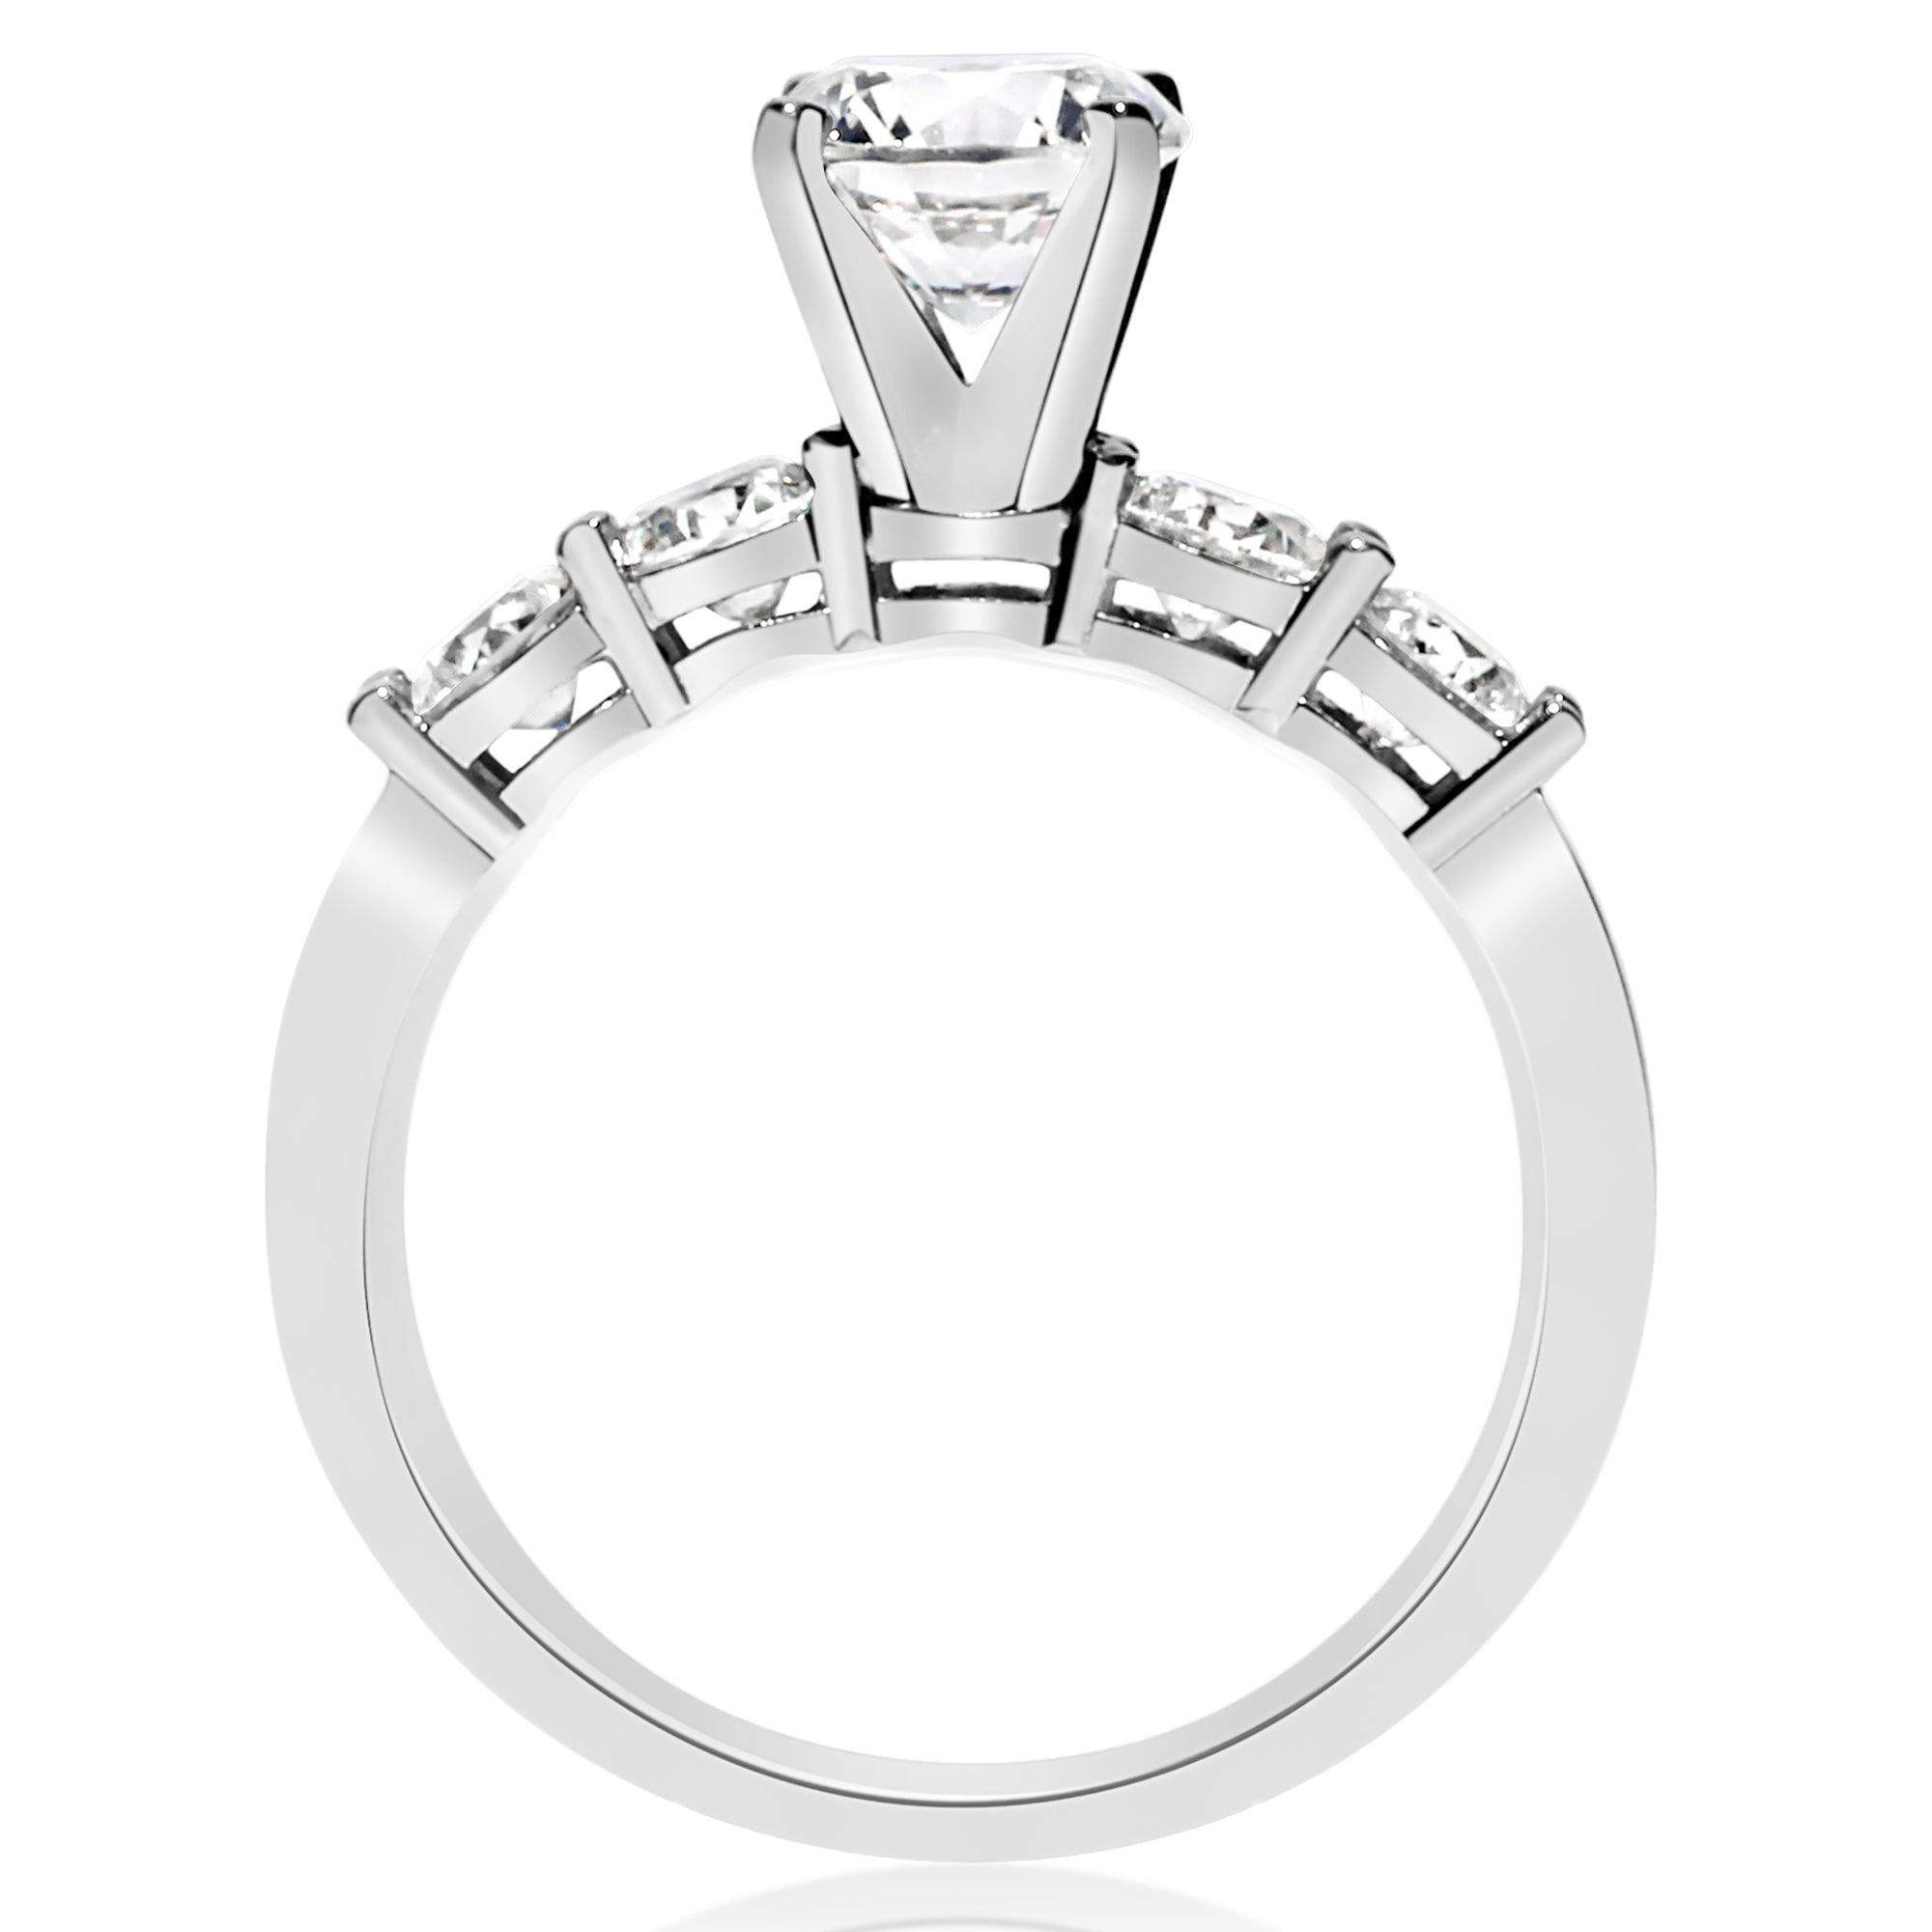 rings solitaire viewing prong throughout ring settings photos set in open engagement flat twist attachment diamond ct of gallery photo